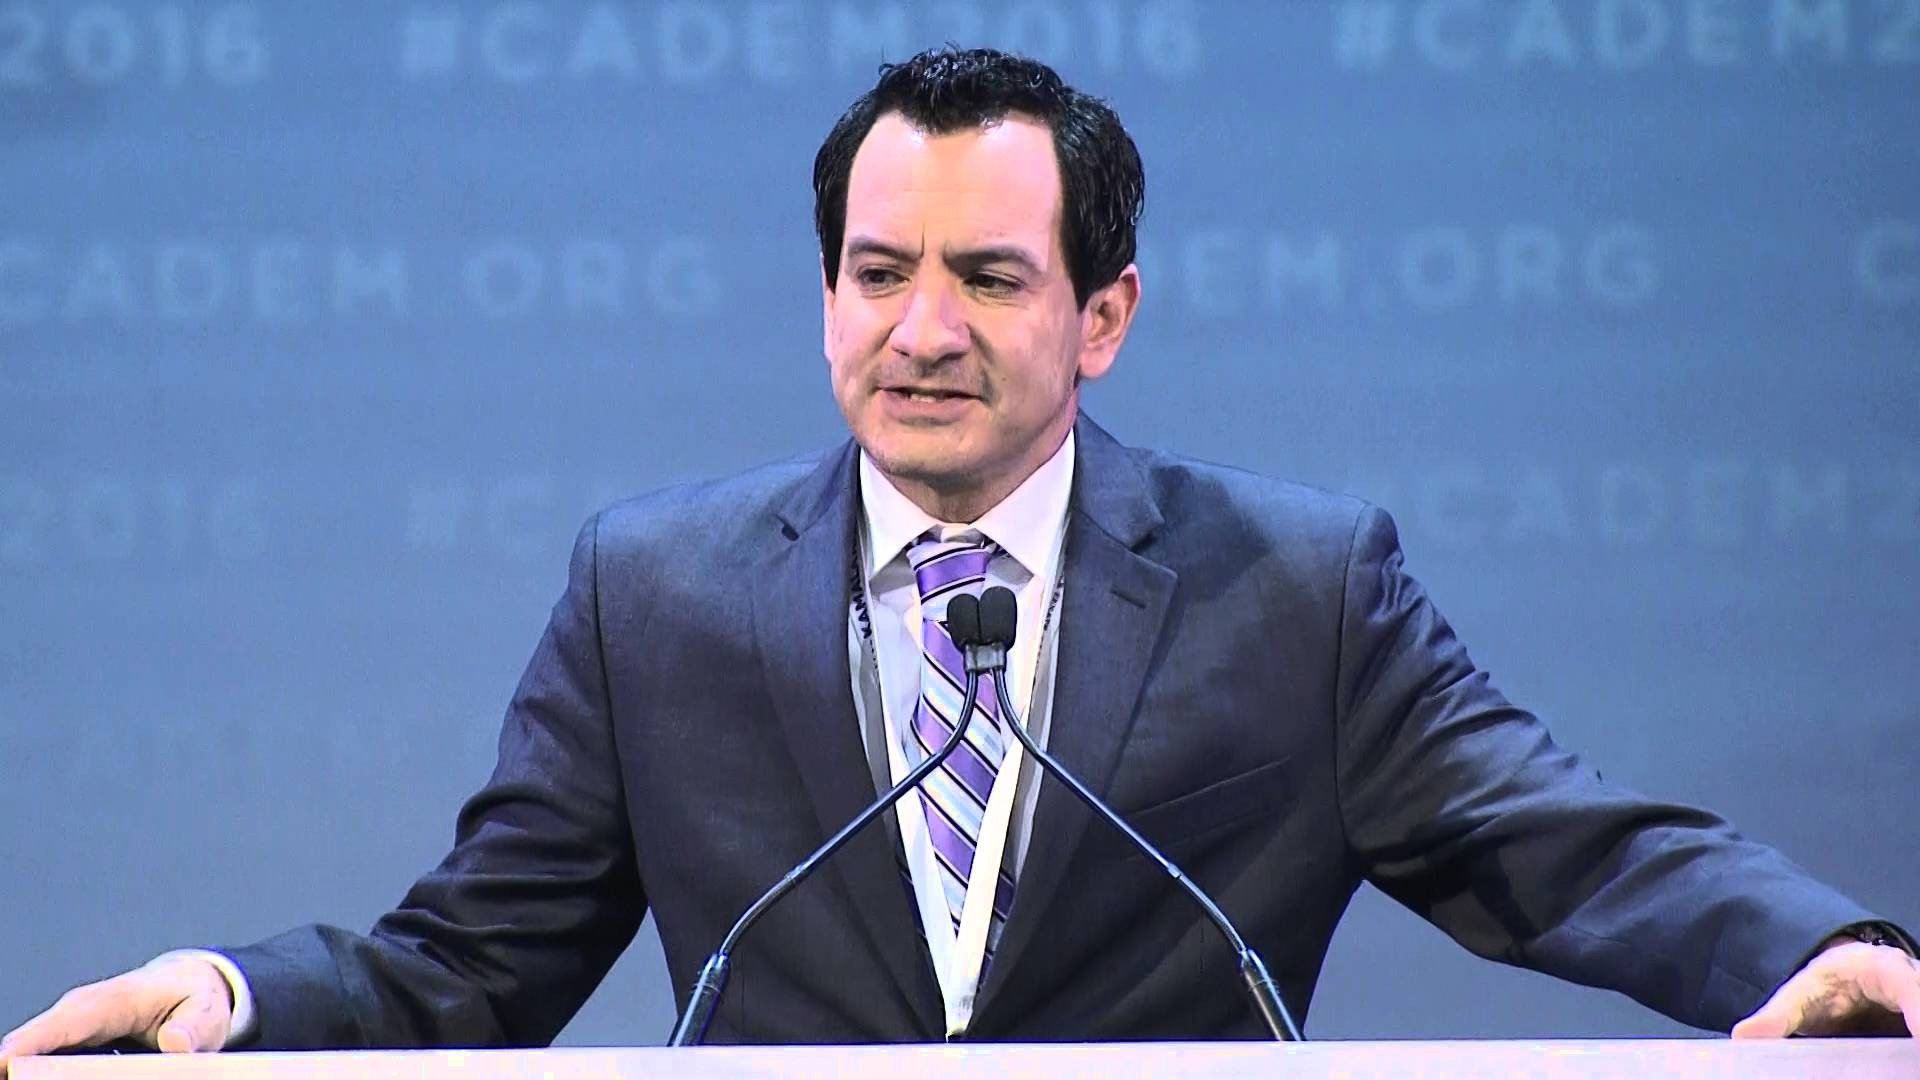 California State Assembly Speaker Anthony Rendon has sent a letter pledging State support for Los Angeles when it hosts the 2028 Olympic and Paralympic Games ©YouTube